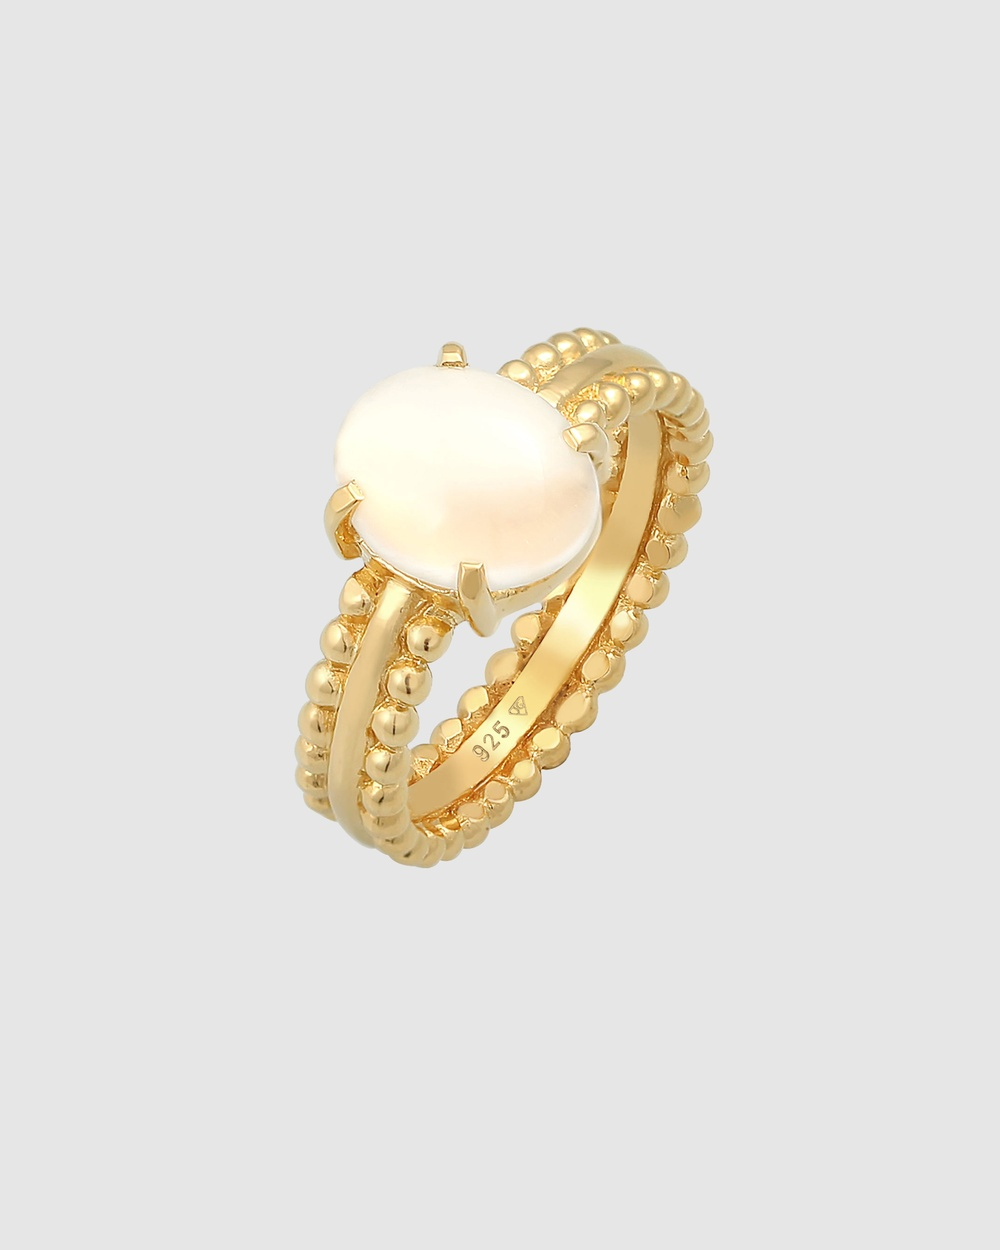 Elli Jewelry Ring Moonstone Gemstone Oval in 925 Sterling Silver Gold Plated Jewellery Gold